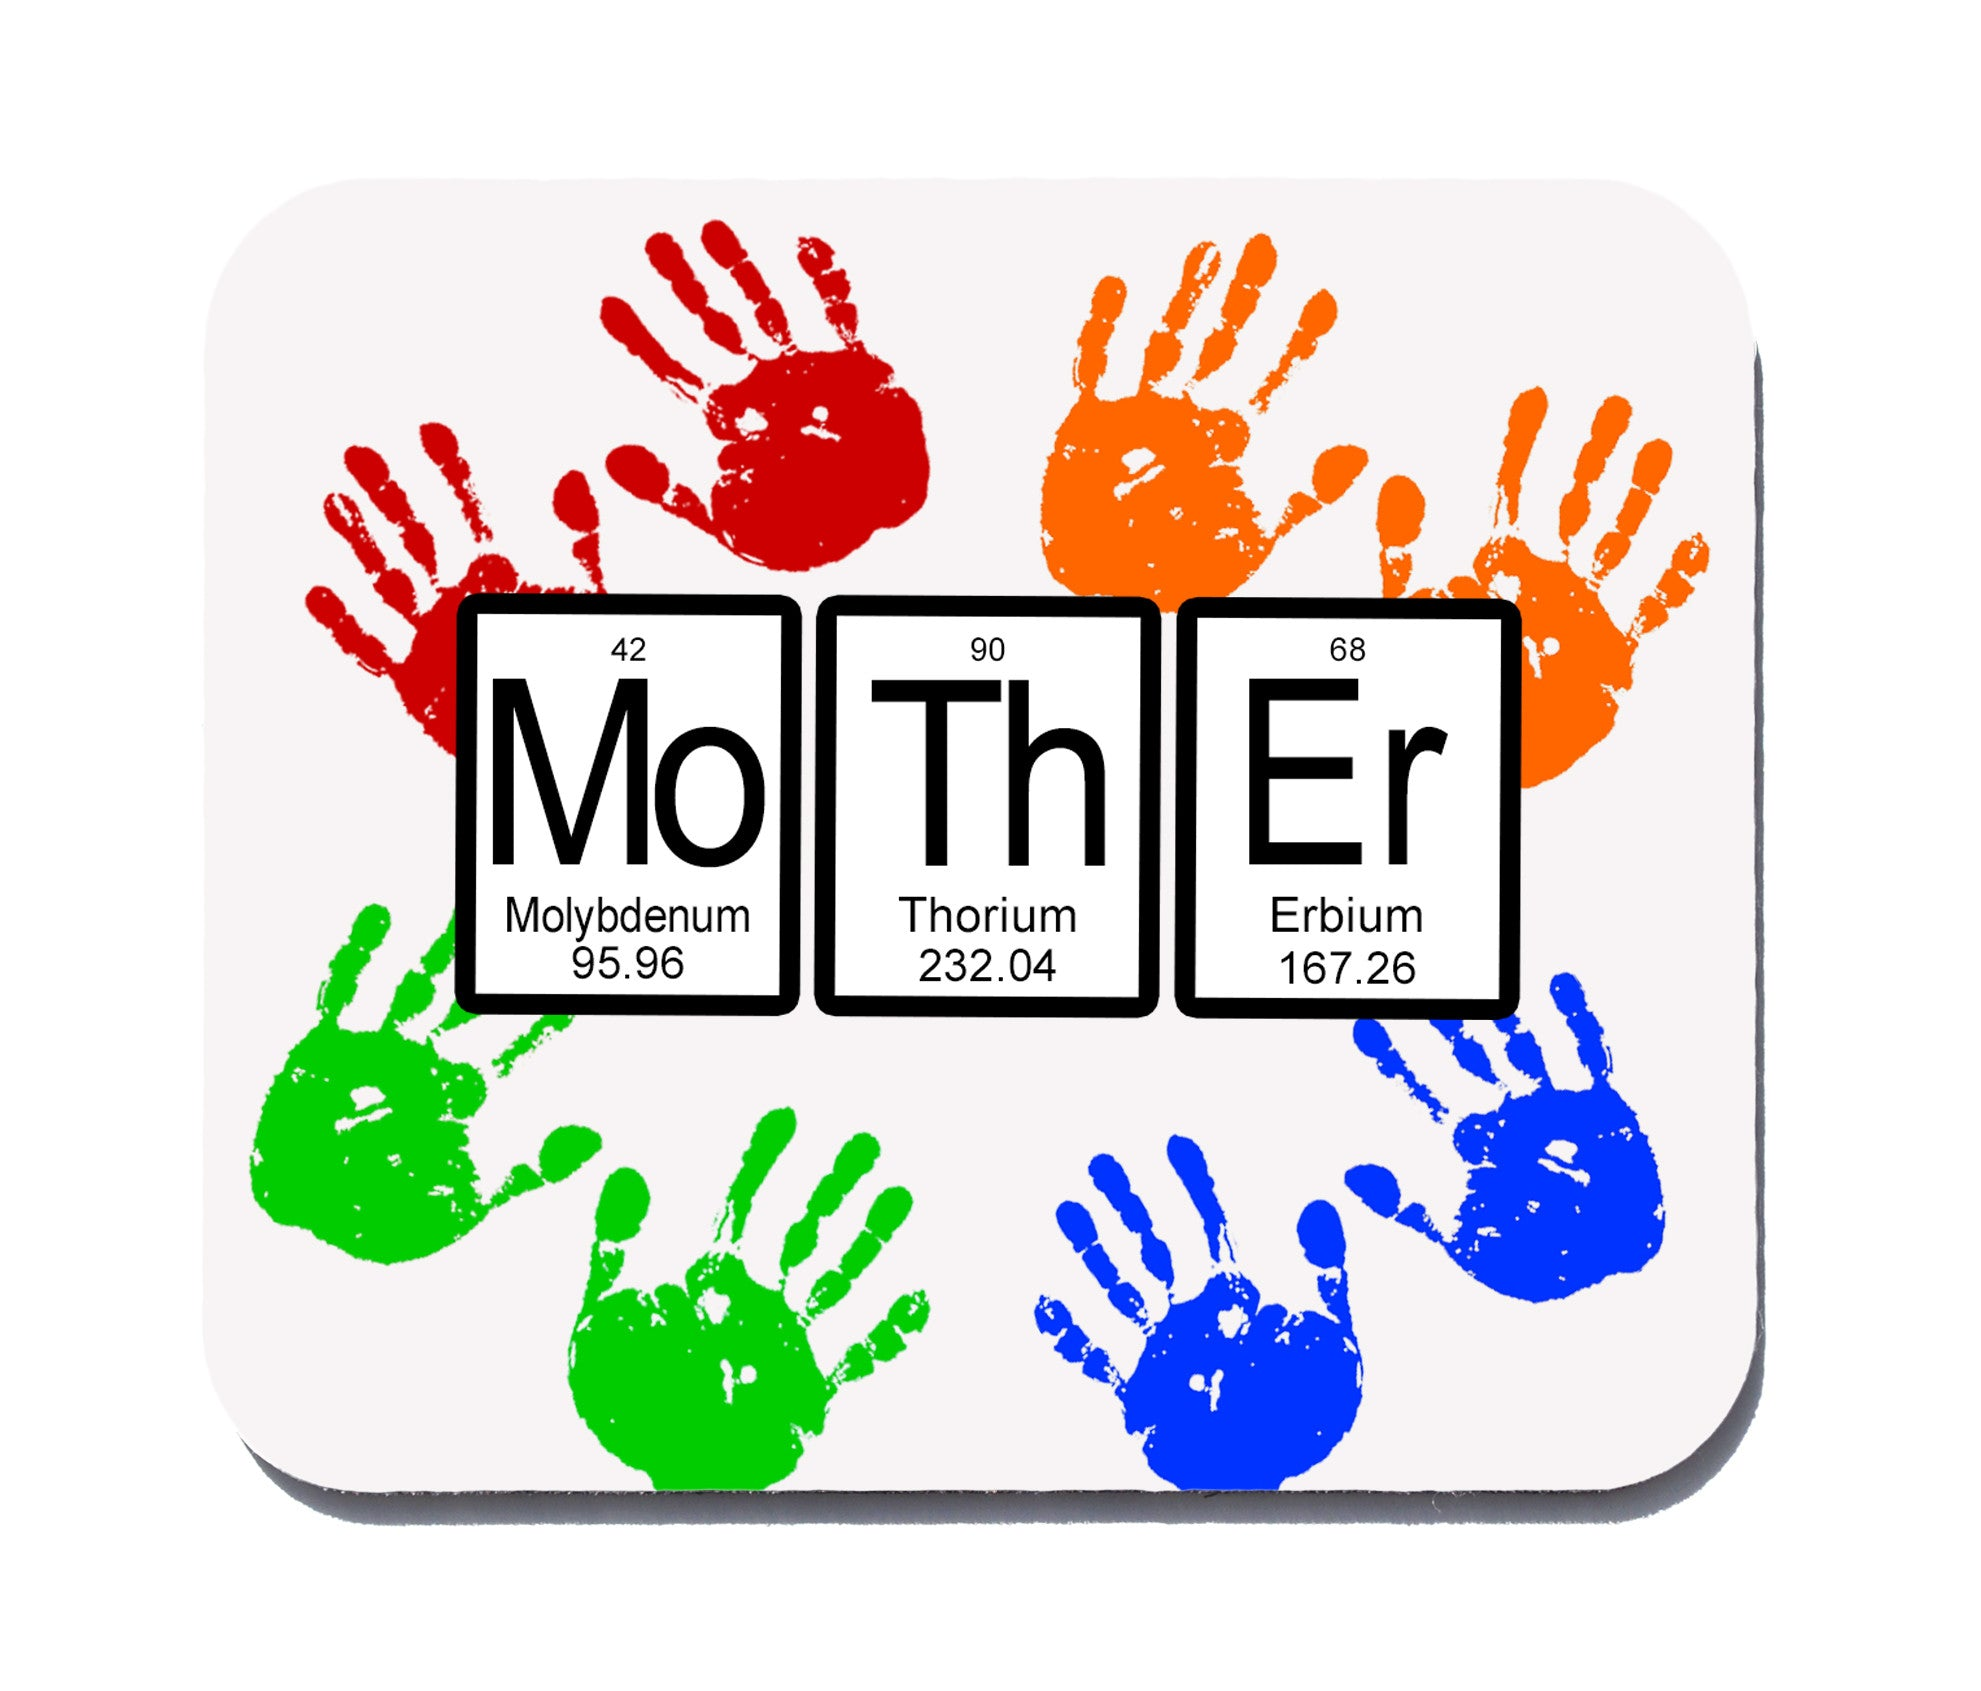 Mother periodic table of elements mothers day gift mouse pad mother periodic table of elements mouse pad urtaz Images